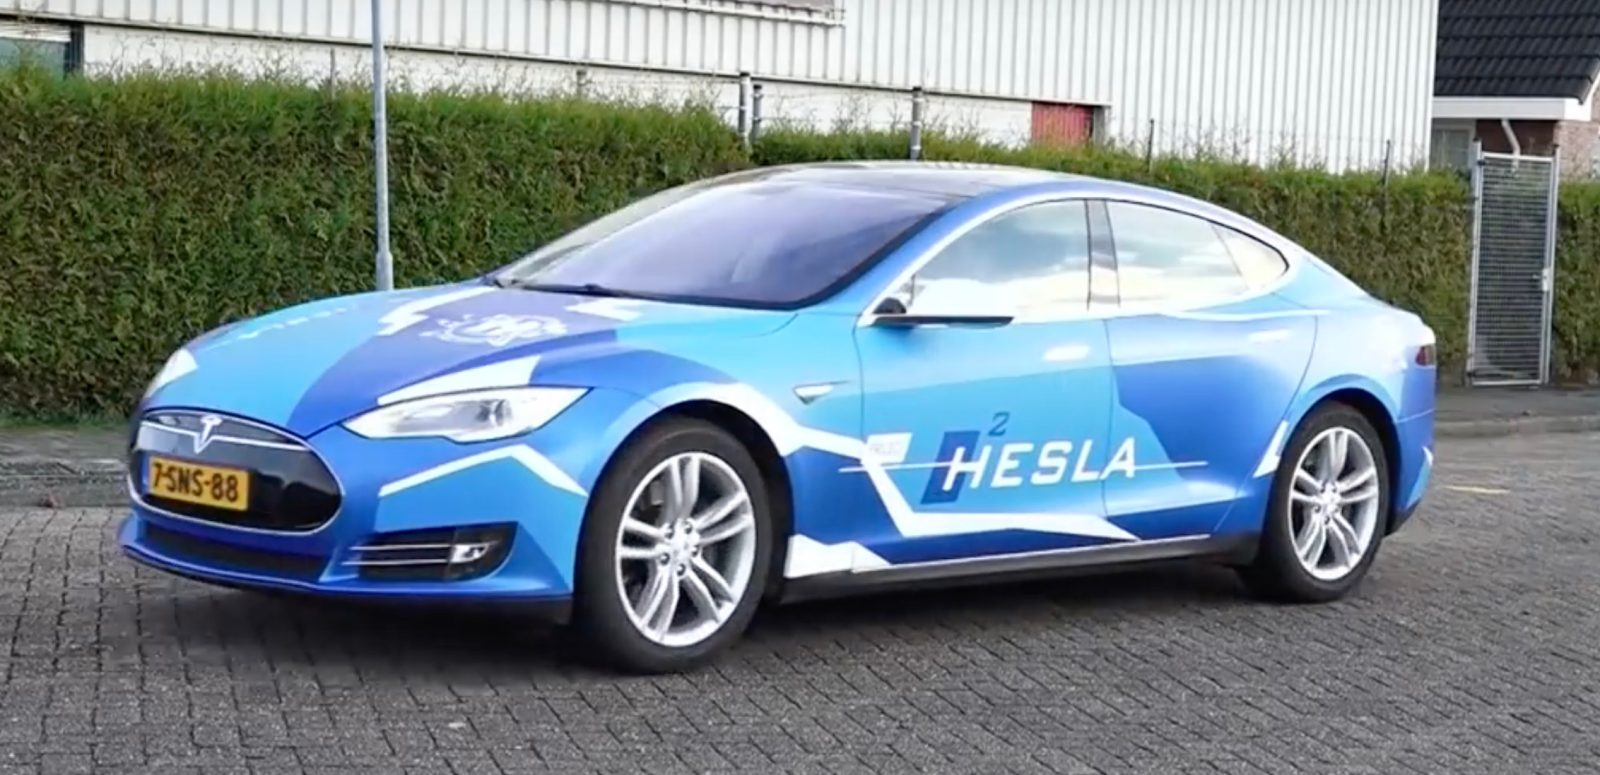 Model Hydrogen Fuel Cell Cars Fuel Cell Hydro...